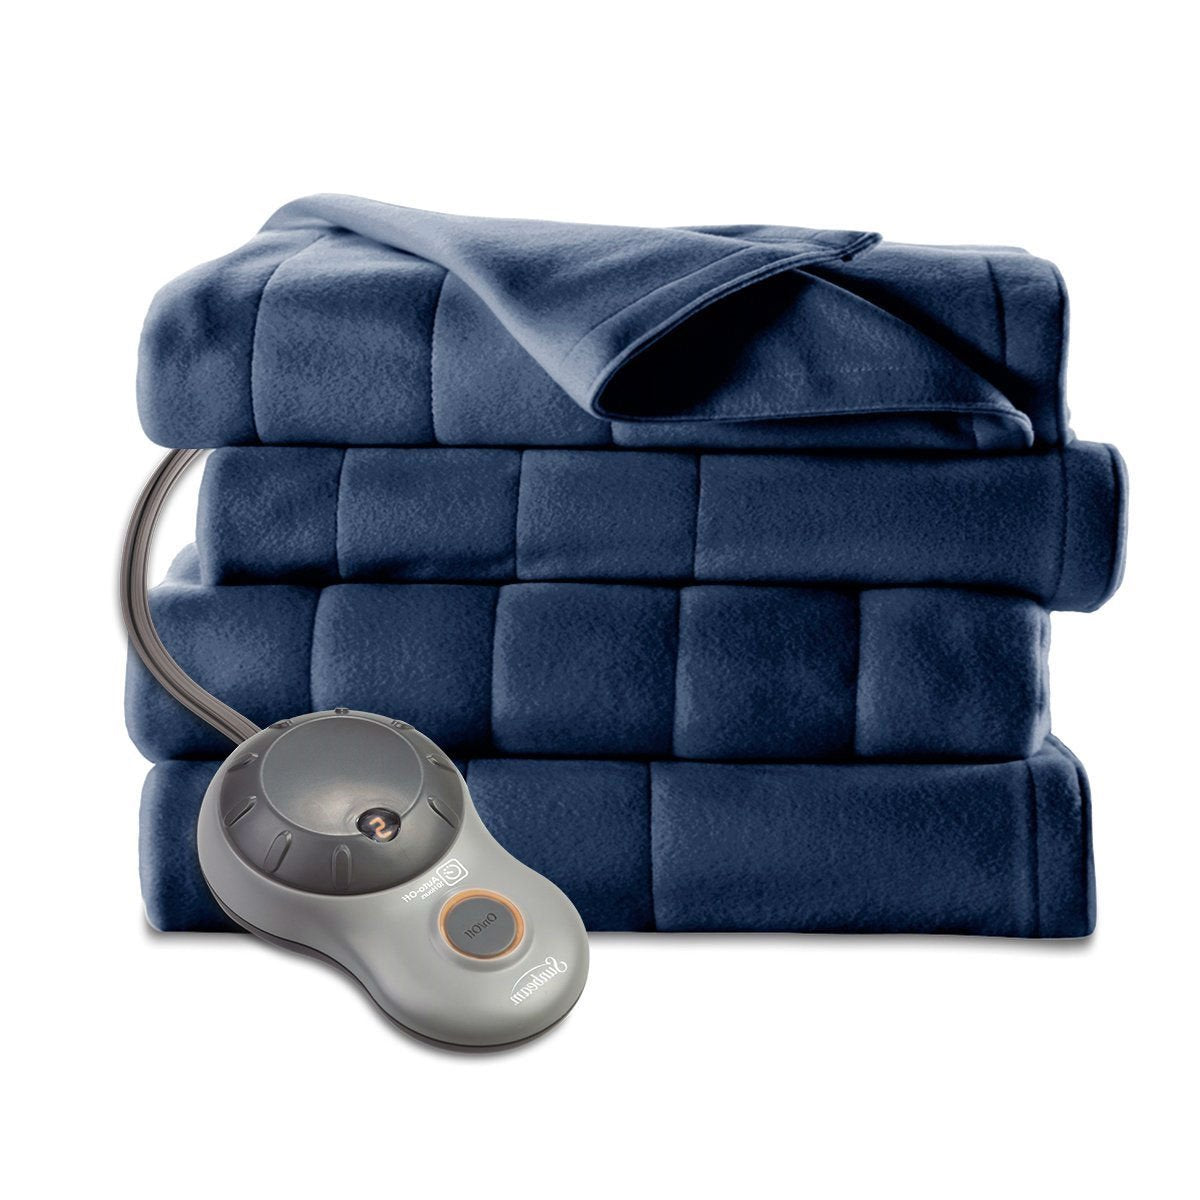 Twin size Quilted Fleece Heated Electric Blanket in Blue Lagoon